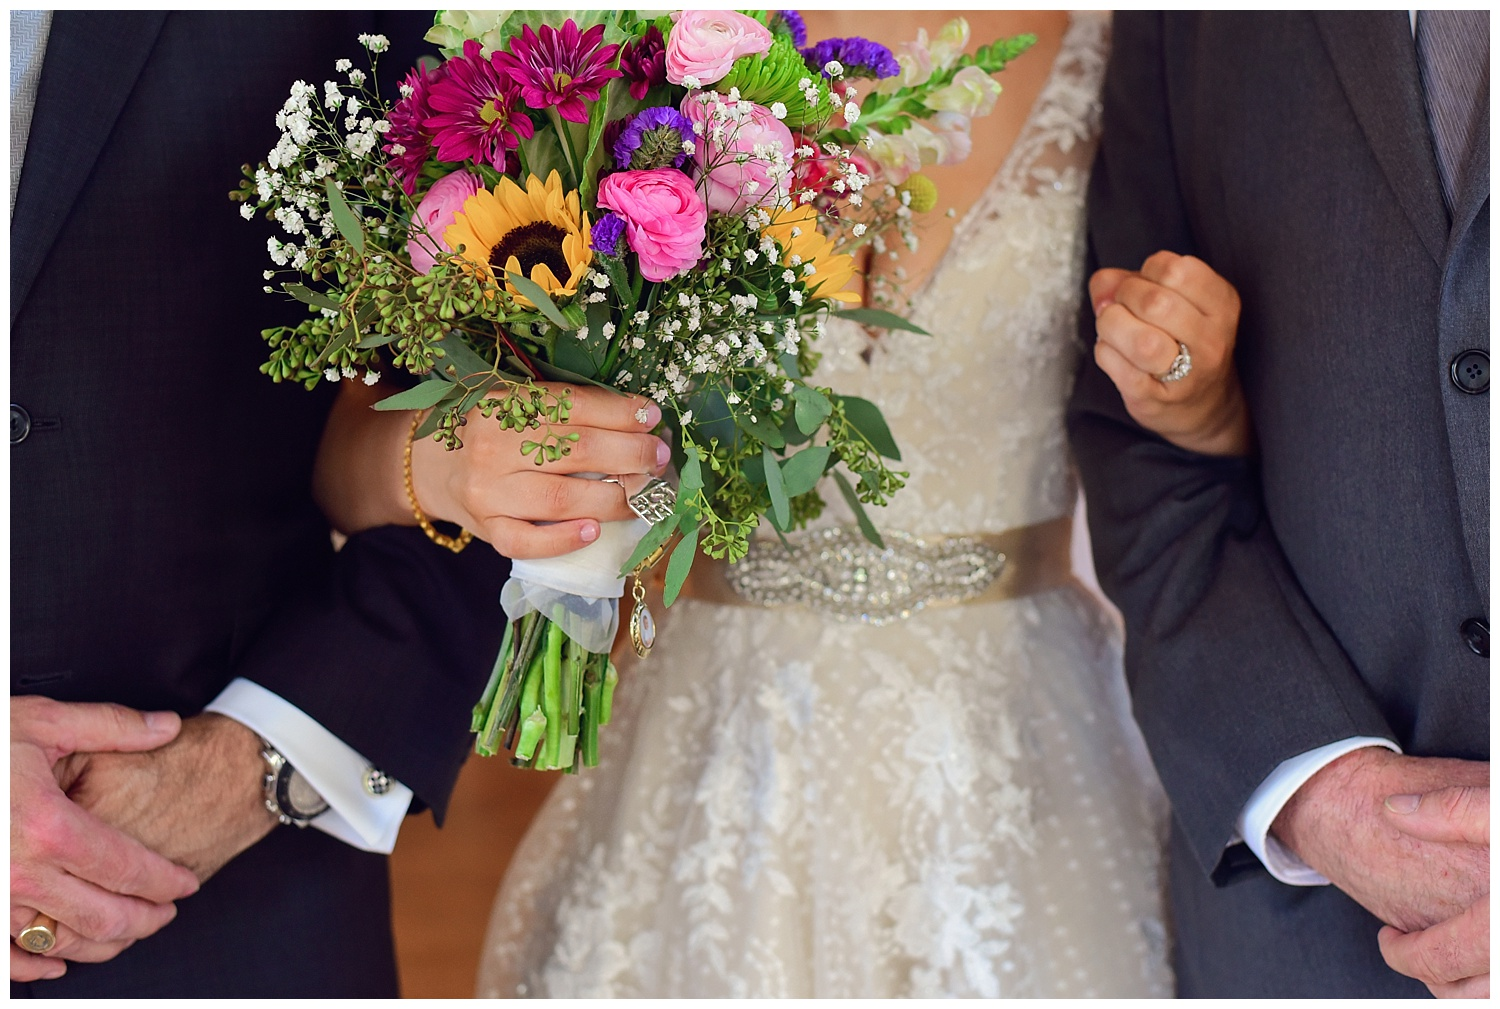 Guest Post! A History of the Wedding Dress by Heidi Stouder